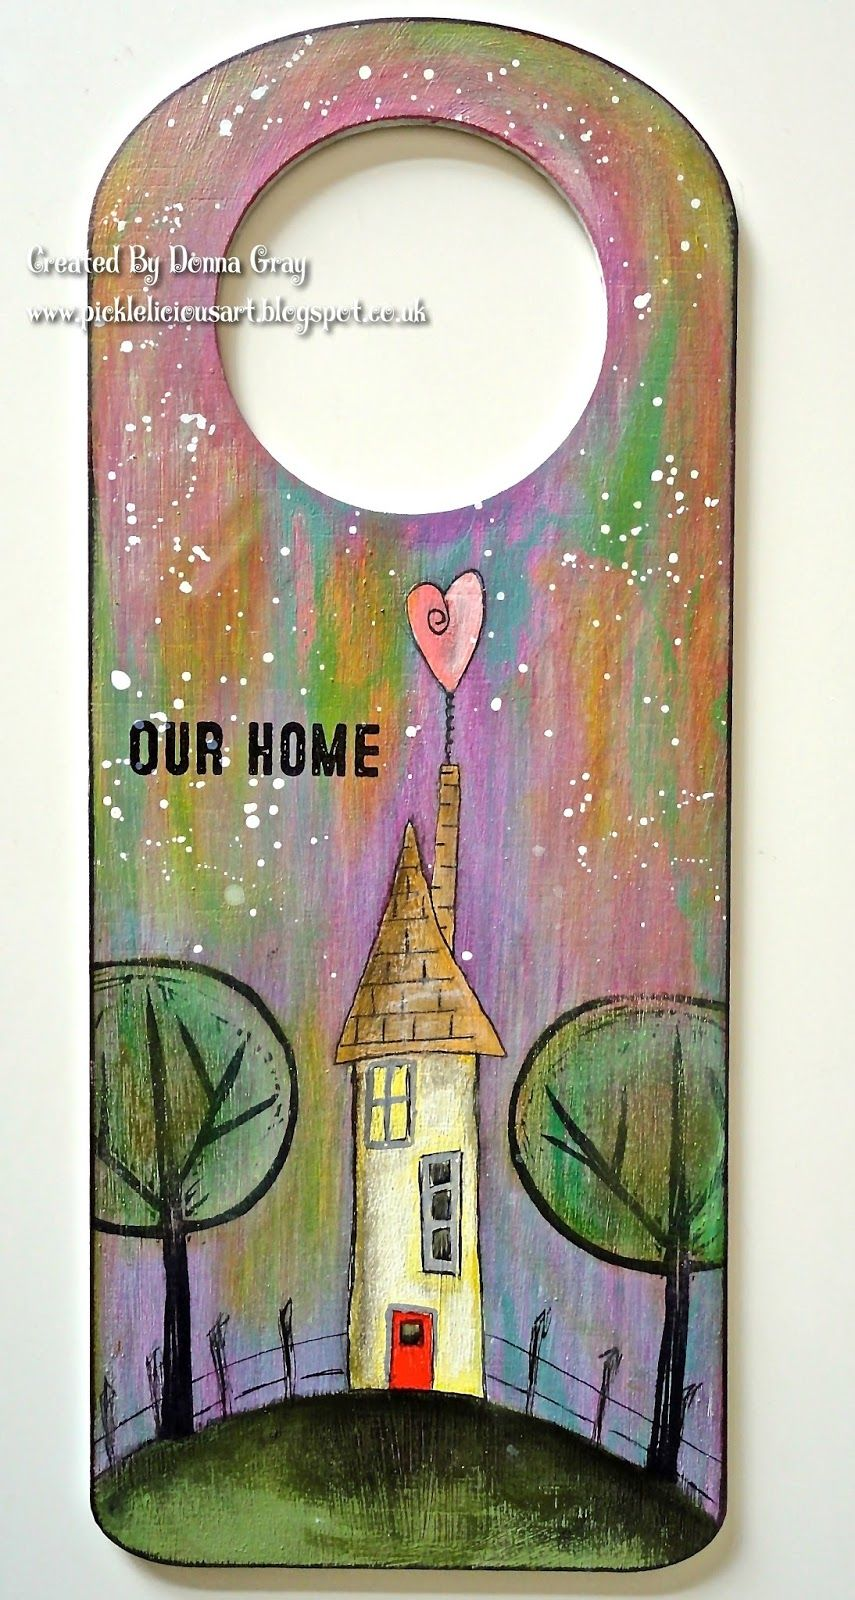 Our Home by Donna Gray | That's Blogging Crafty!